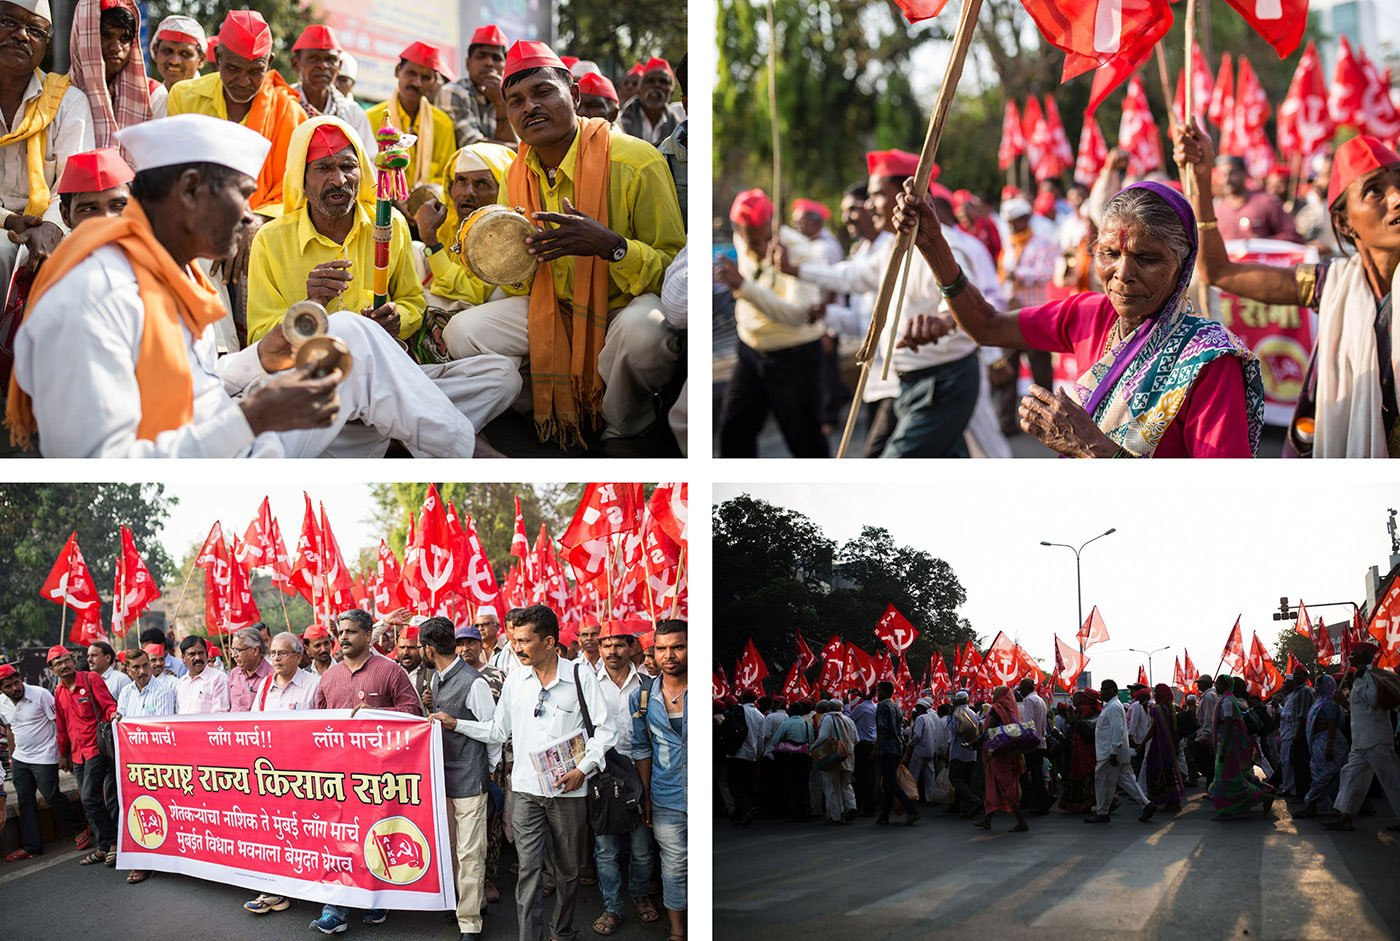 Top left: Farmers from Adivasi communities sing a devotional song. Top right: Rukmabai Bendkule, 60, at the forefront of the march, dances with a red flag in hand. Bottom: Thousands of farmers on the move with flags and banners. Credit: Parth M.N./People's Archive of Rural India